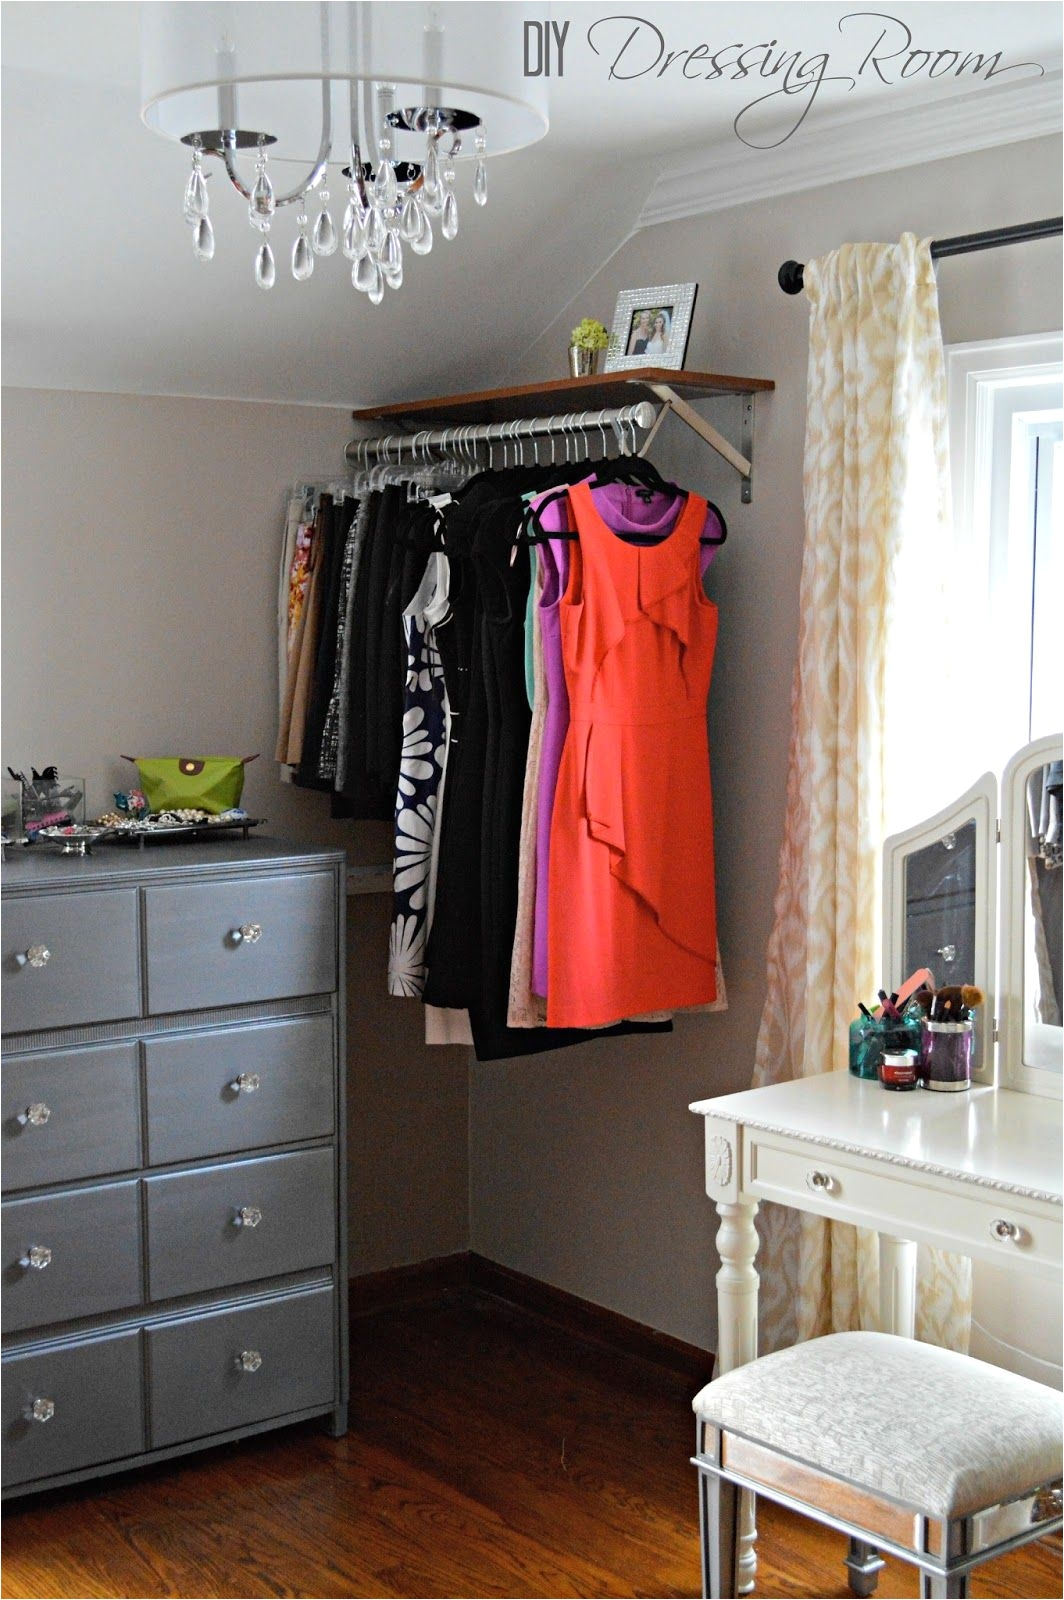 Coat Rack Ideas for Small Spaces 9 Ways to Store Clothes without A Closet Pinterest Inexpensive